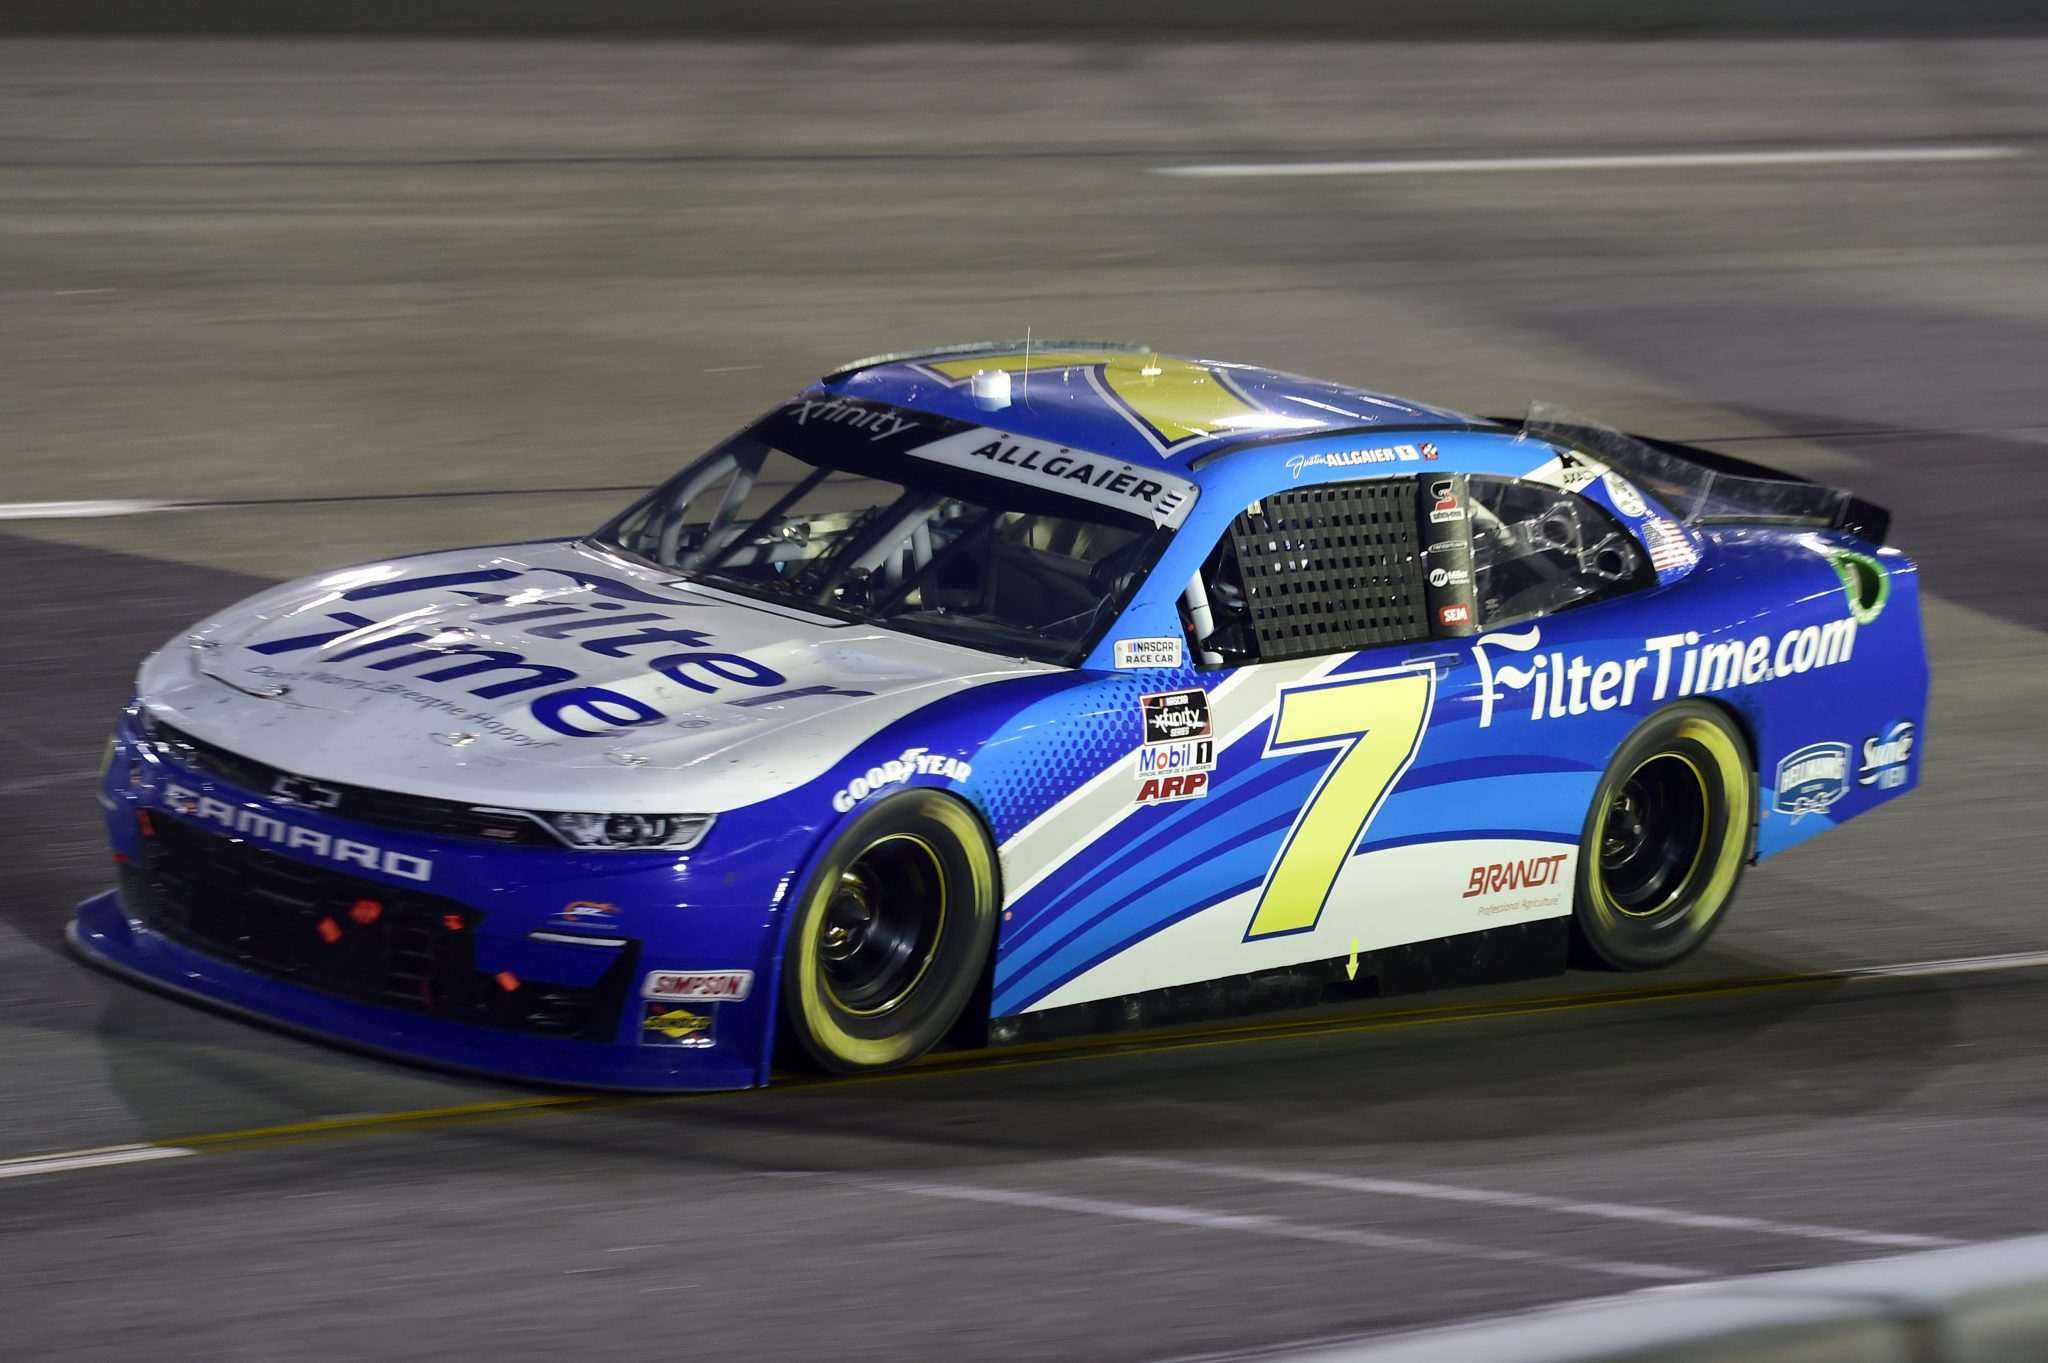 RICHMOND, VIRGINIA - SEPTEMBER 11: Justin Allgaier, driver of the #7 FilterTime Chevrolet, drives during the NASCAR Xfinity Series Go Bowling 250 at Richmond Raceway on September 11, 2020 in Richmond, Virginia. (Photo by Jared C. Tilton/Getty Images) | Getty Images